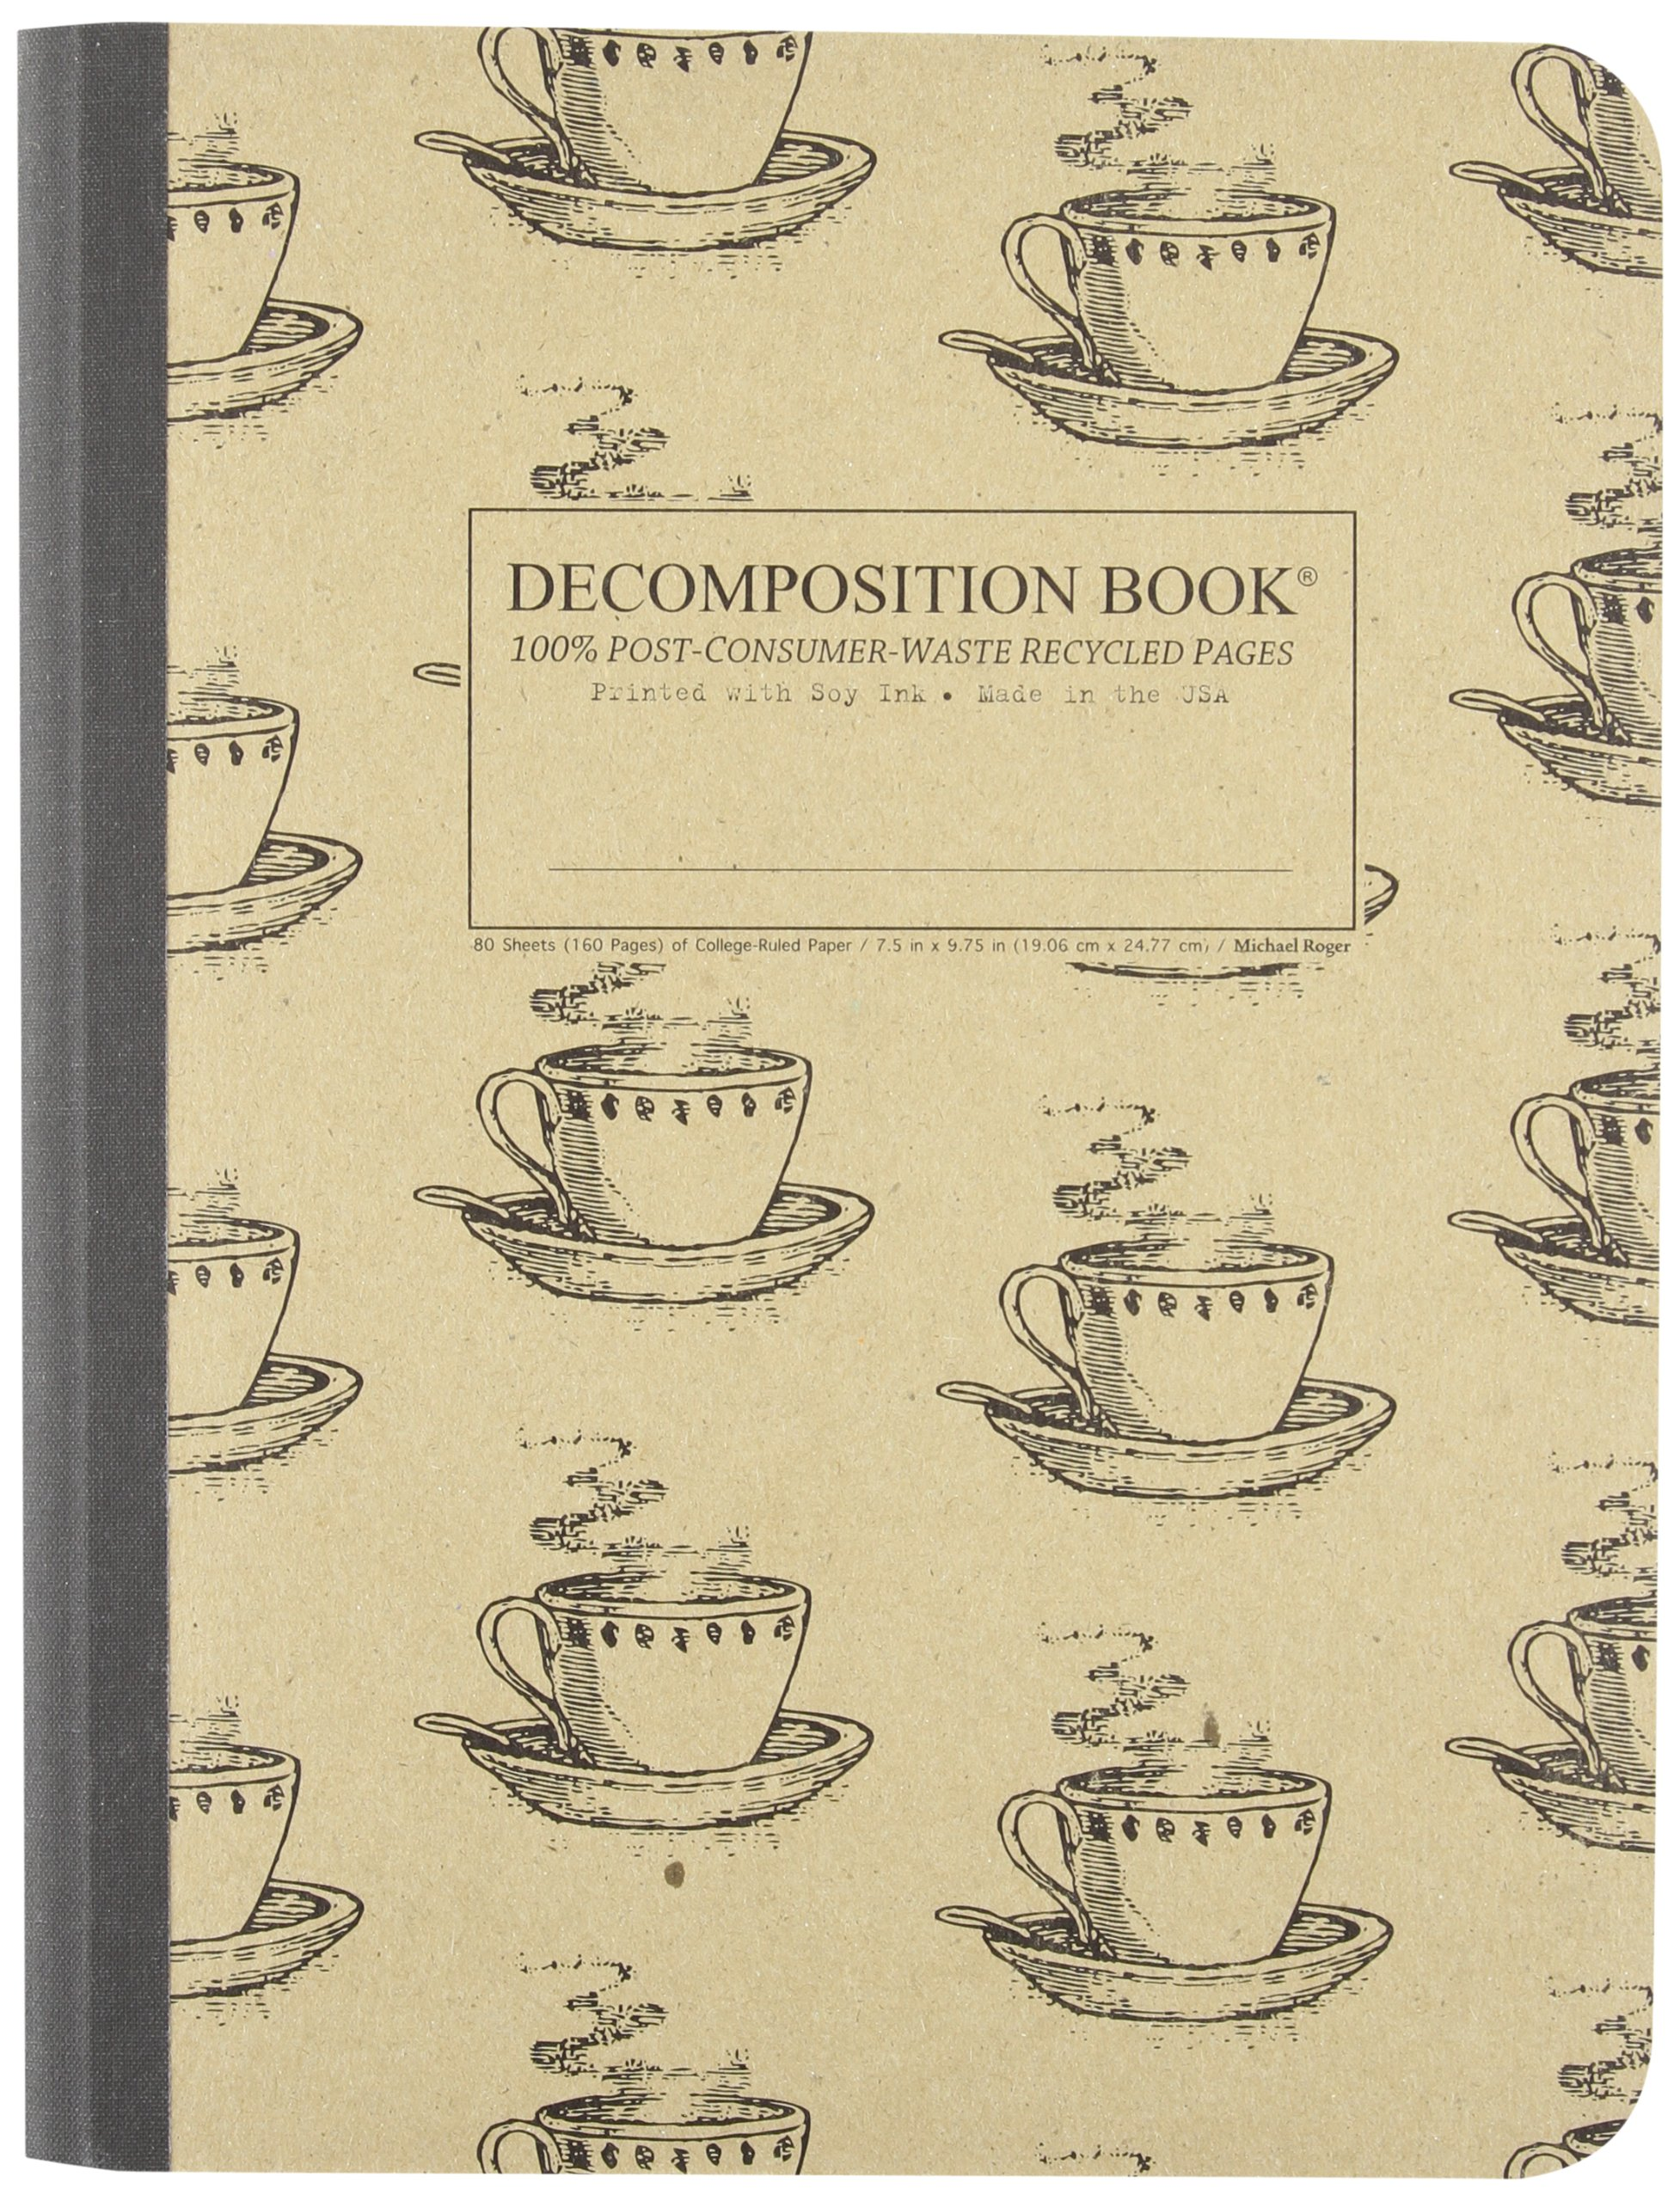 Coffee Decomposition Book College ruled Post consumer waste product image